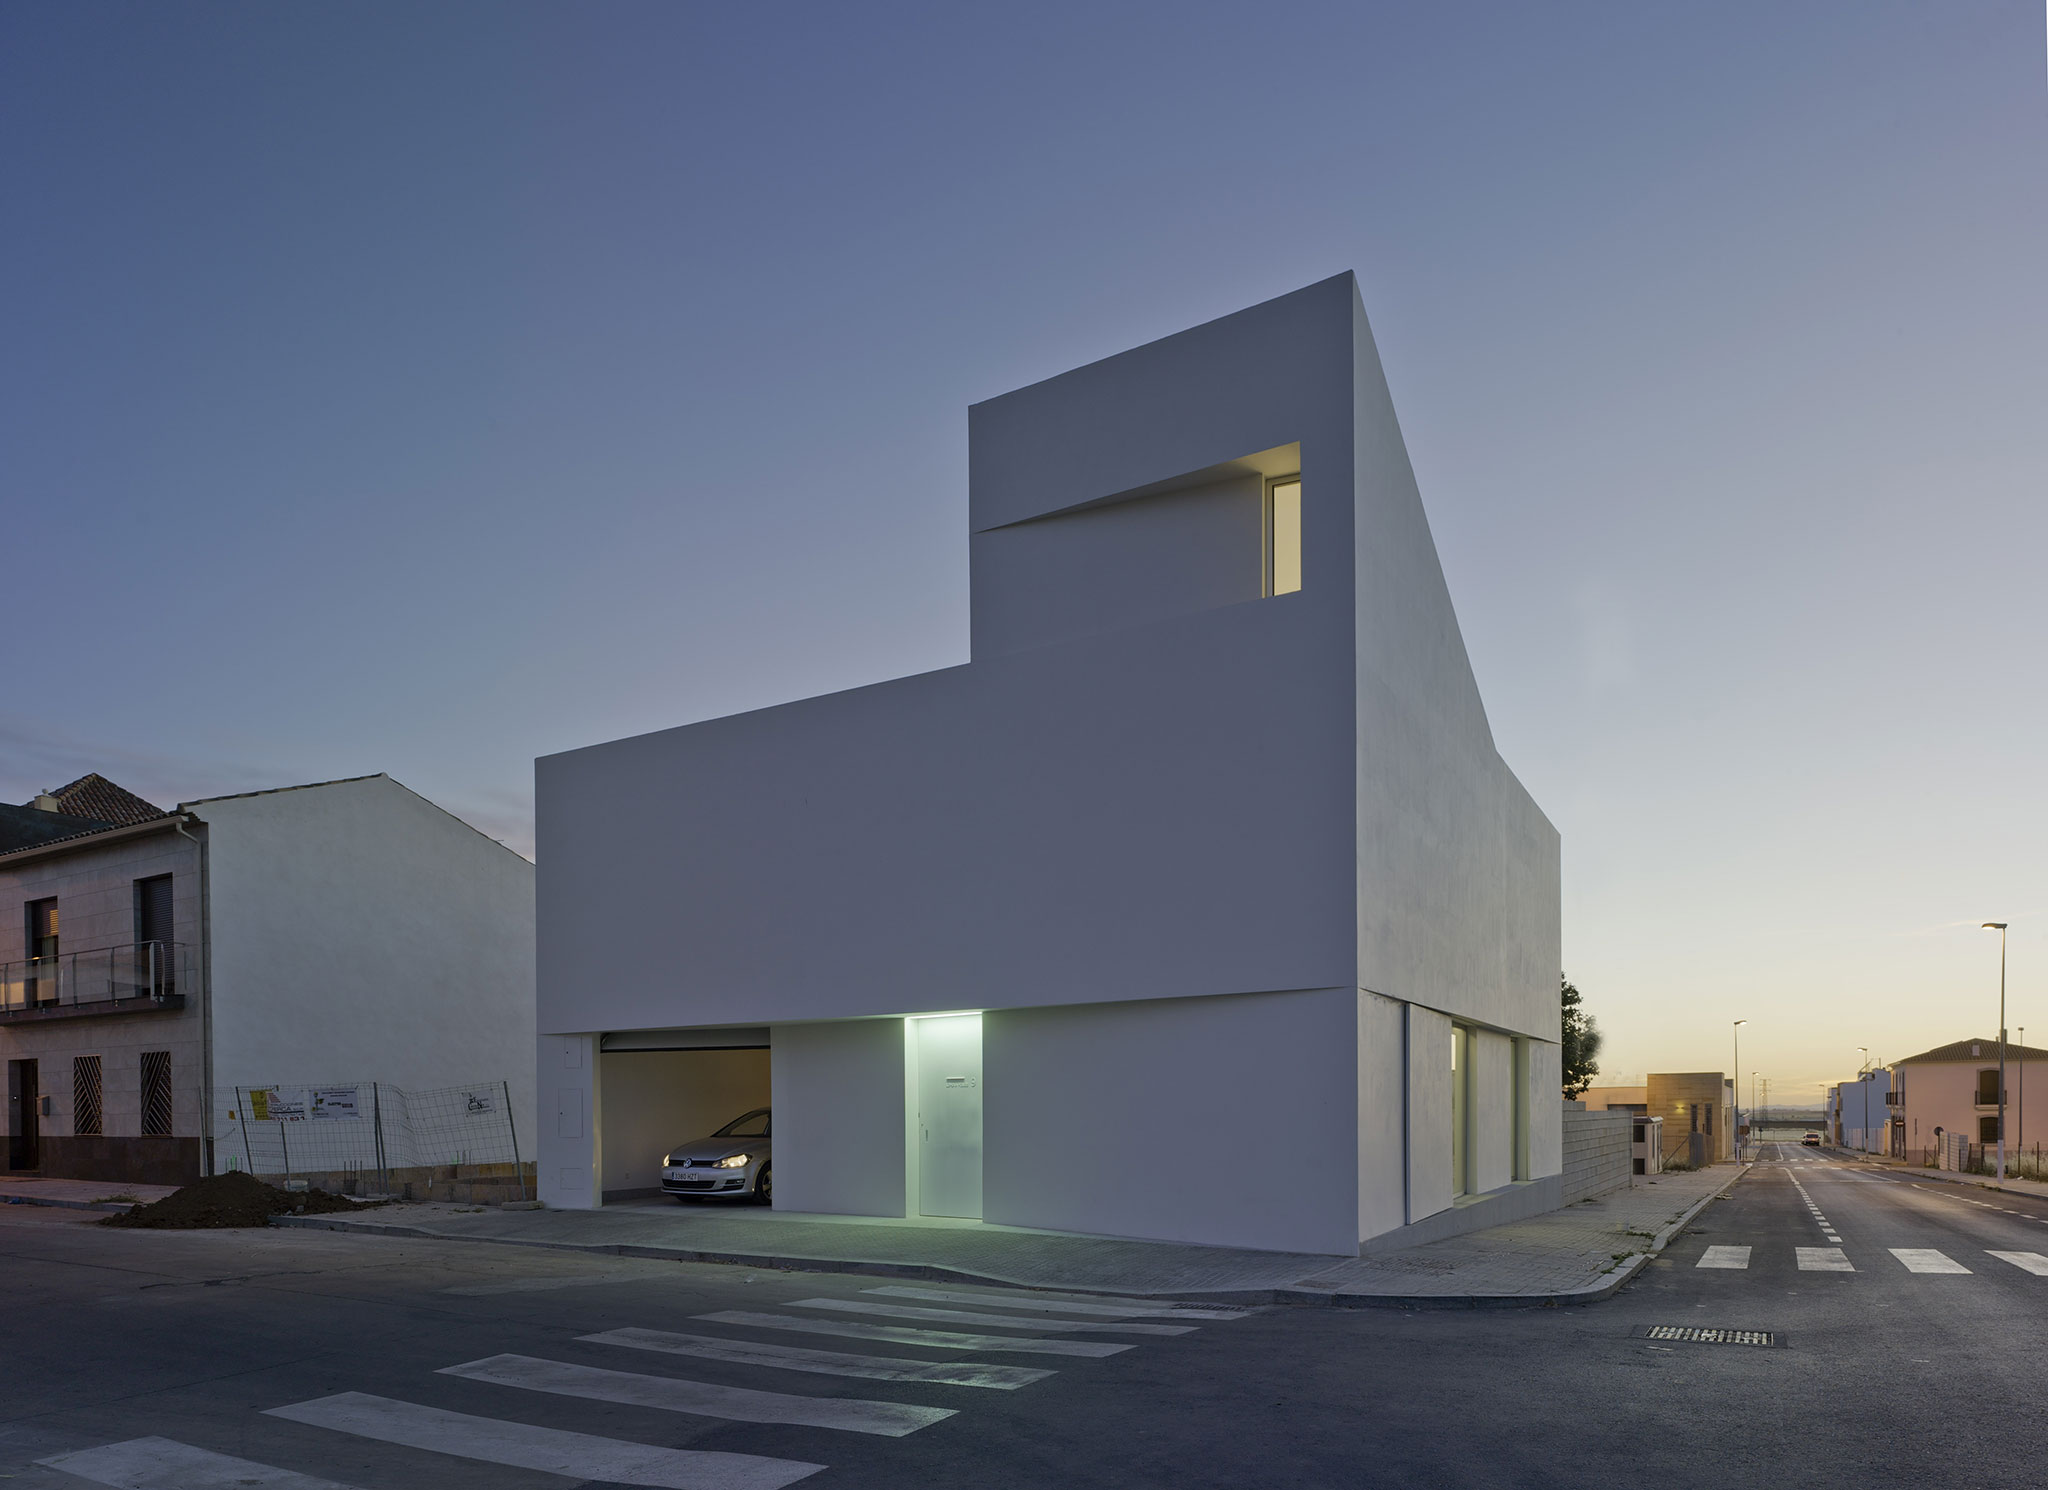 Exterior view. Lopera House by David Ruiz Molina. Photograph © David Frutos